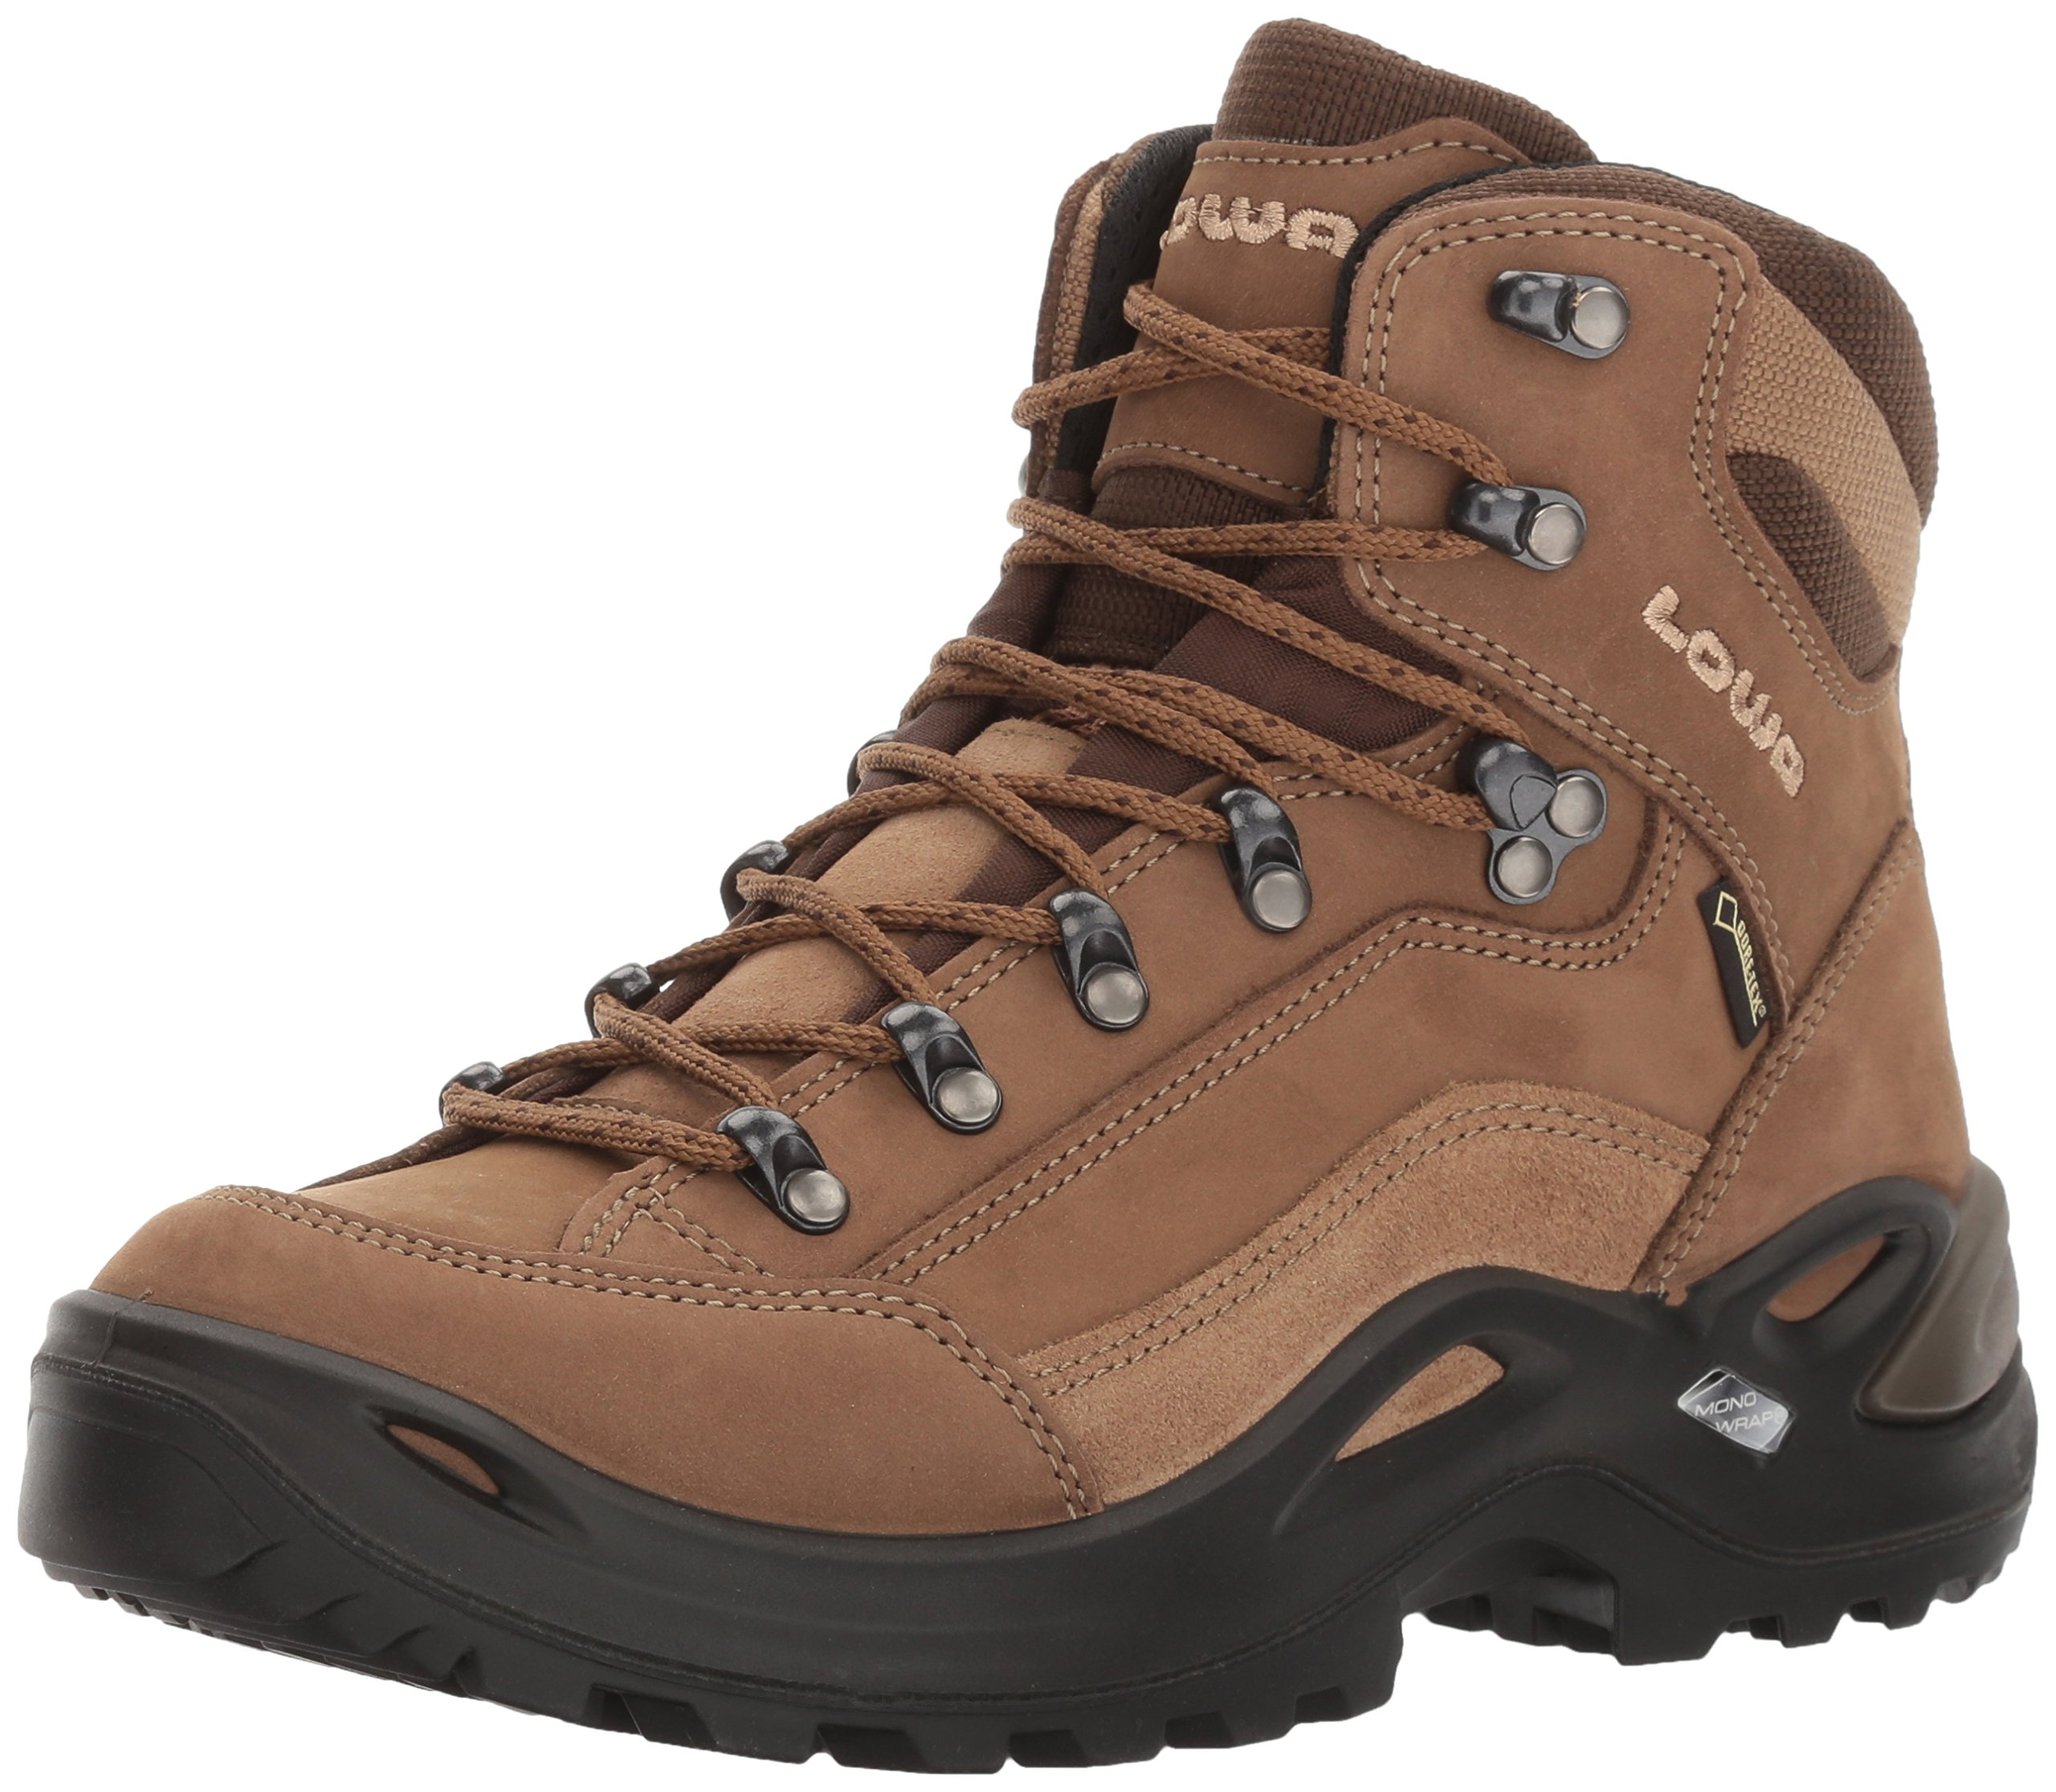 Lowa Women's Renegade GTX Mid Hiking Boot,Taupe/Sepia,10 M US by LOWA Boots